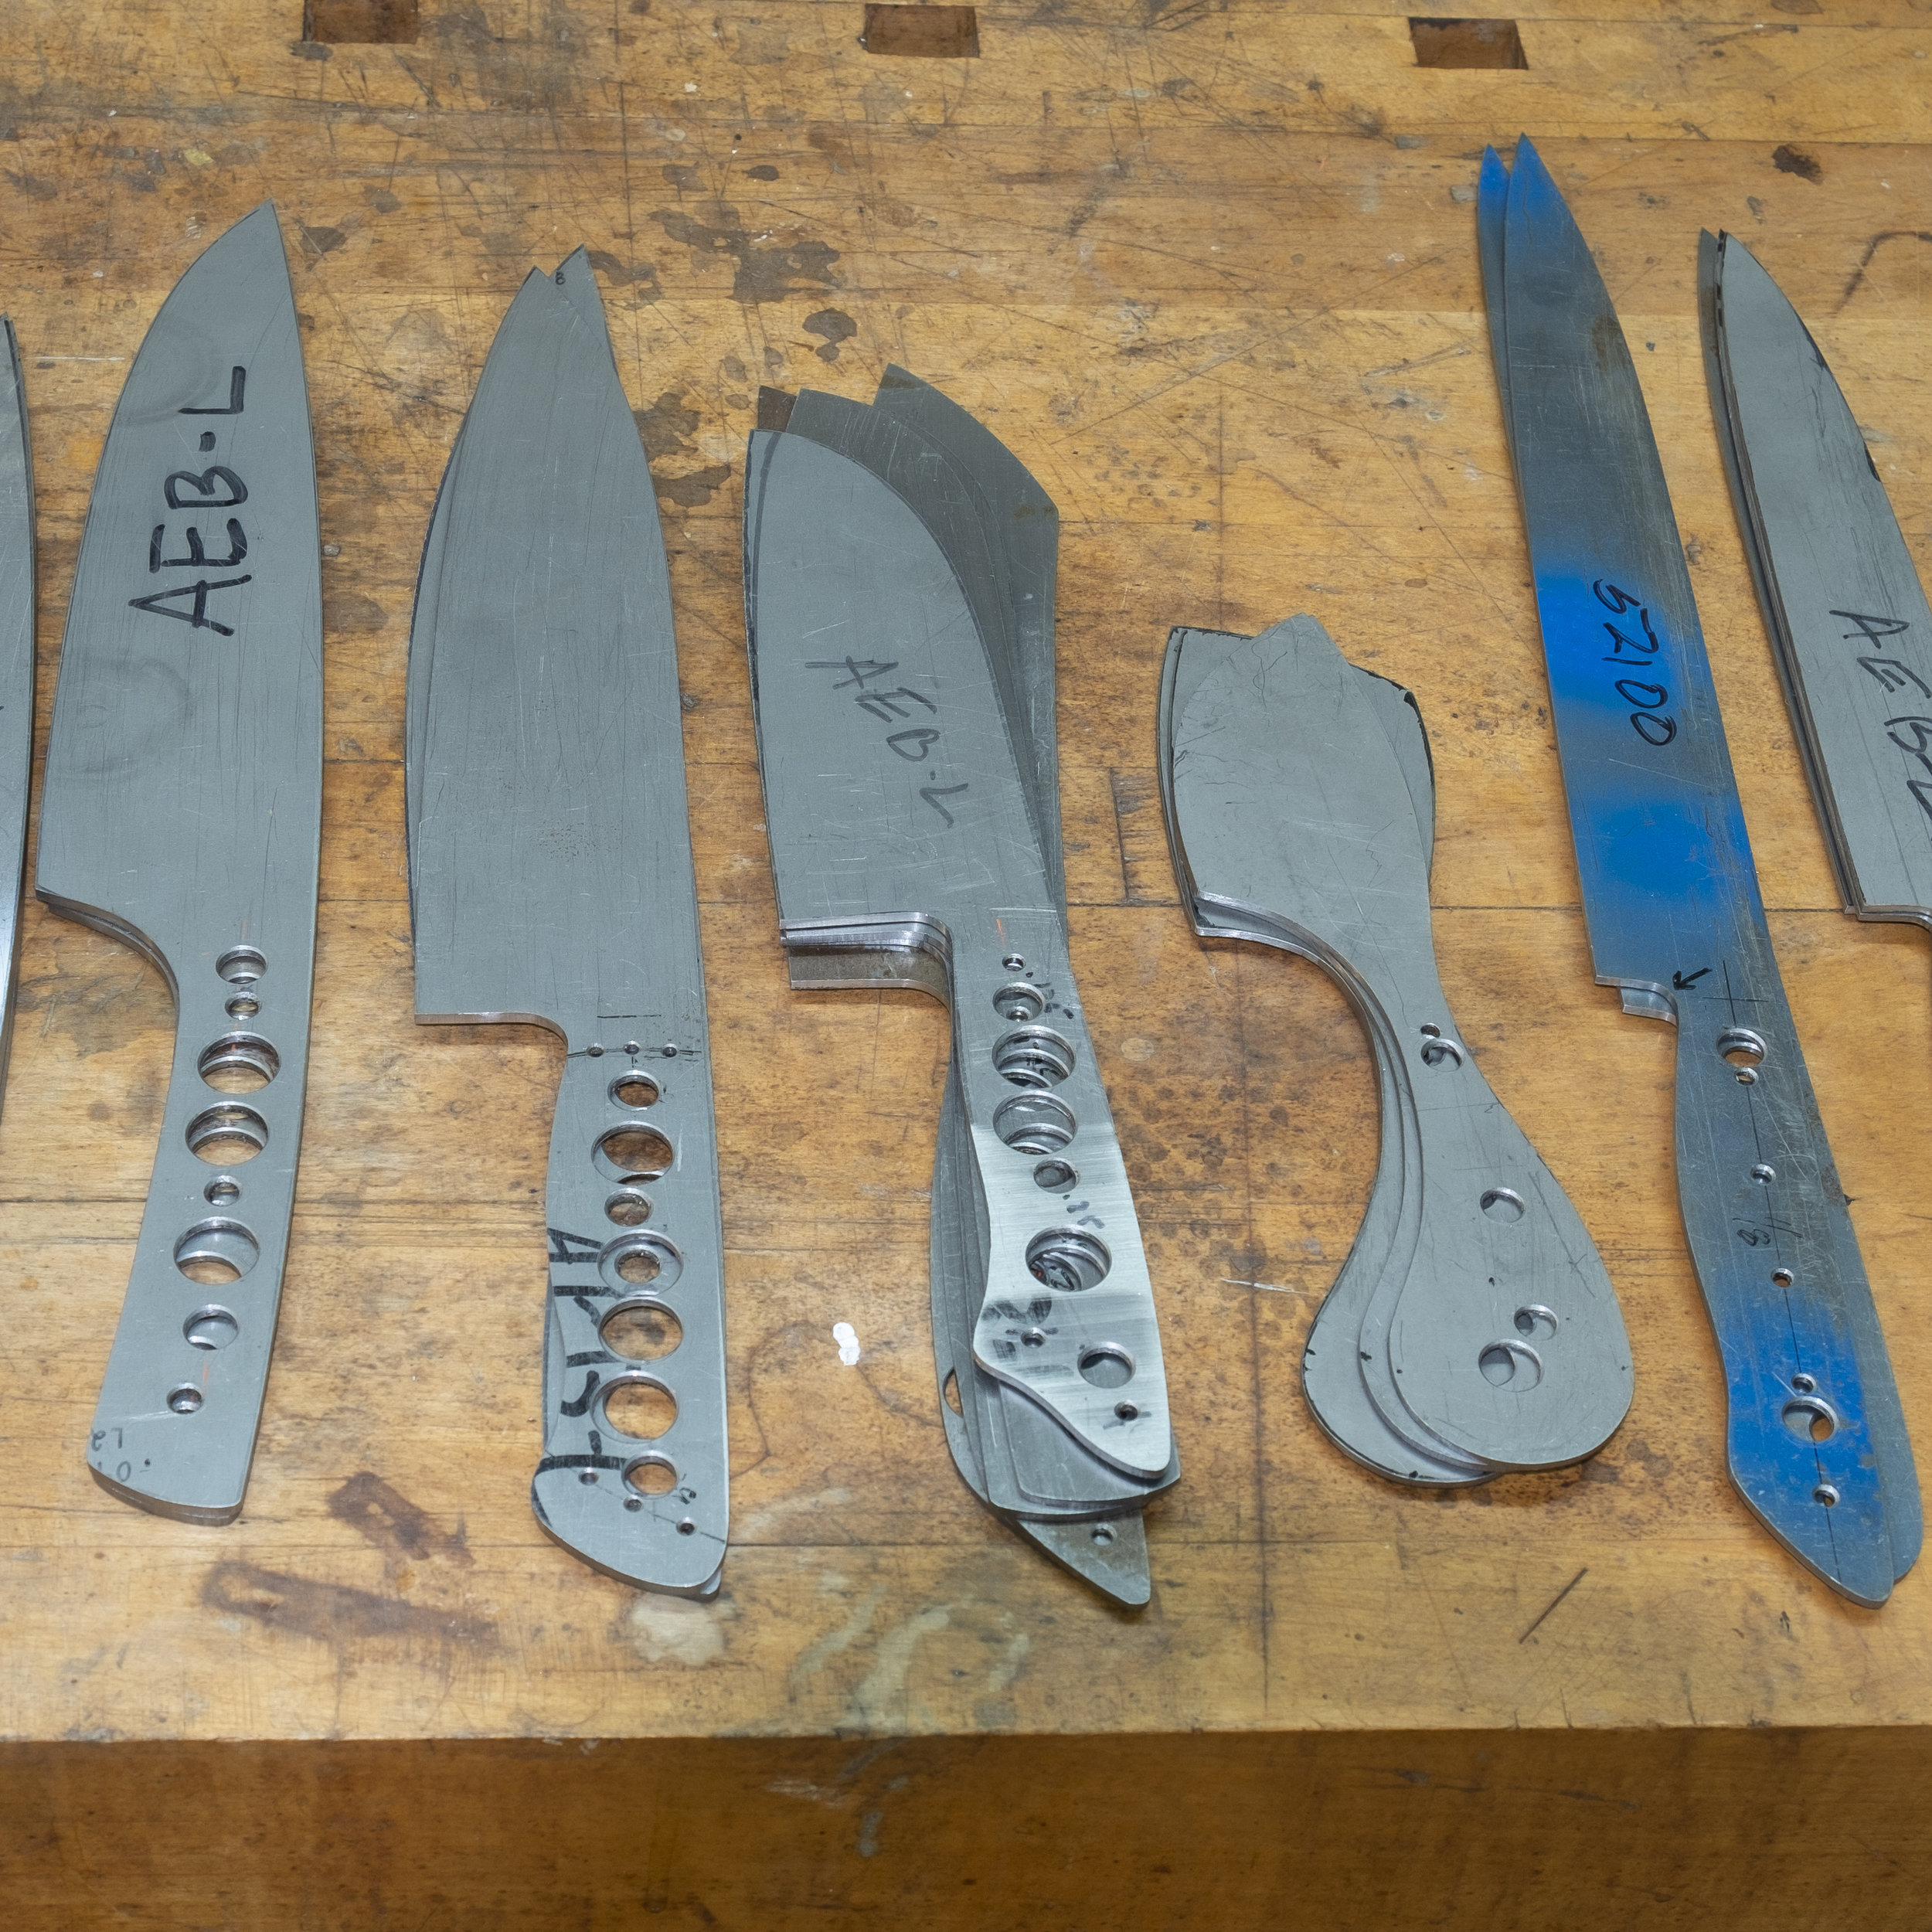 A Selection of knife blanks ready to be sent out for heat treating (hardening).